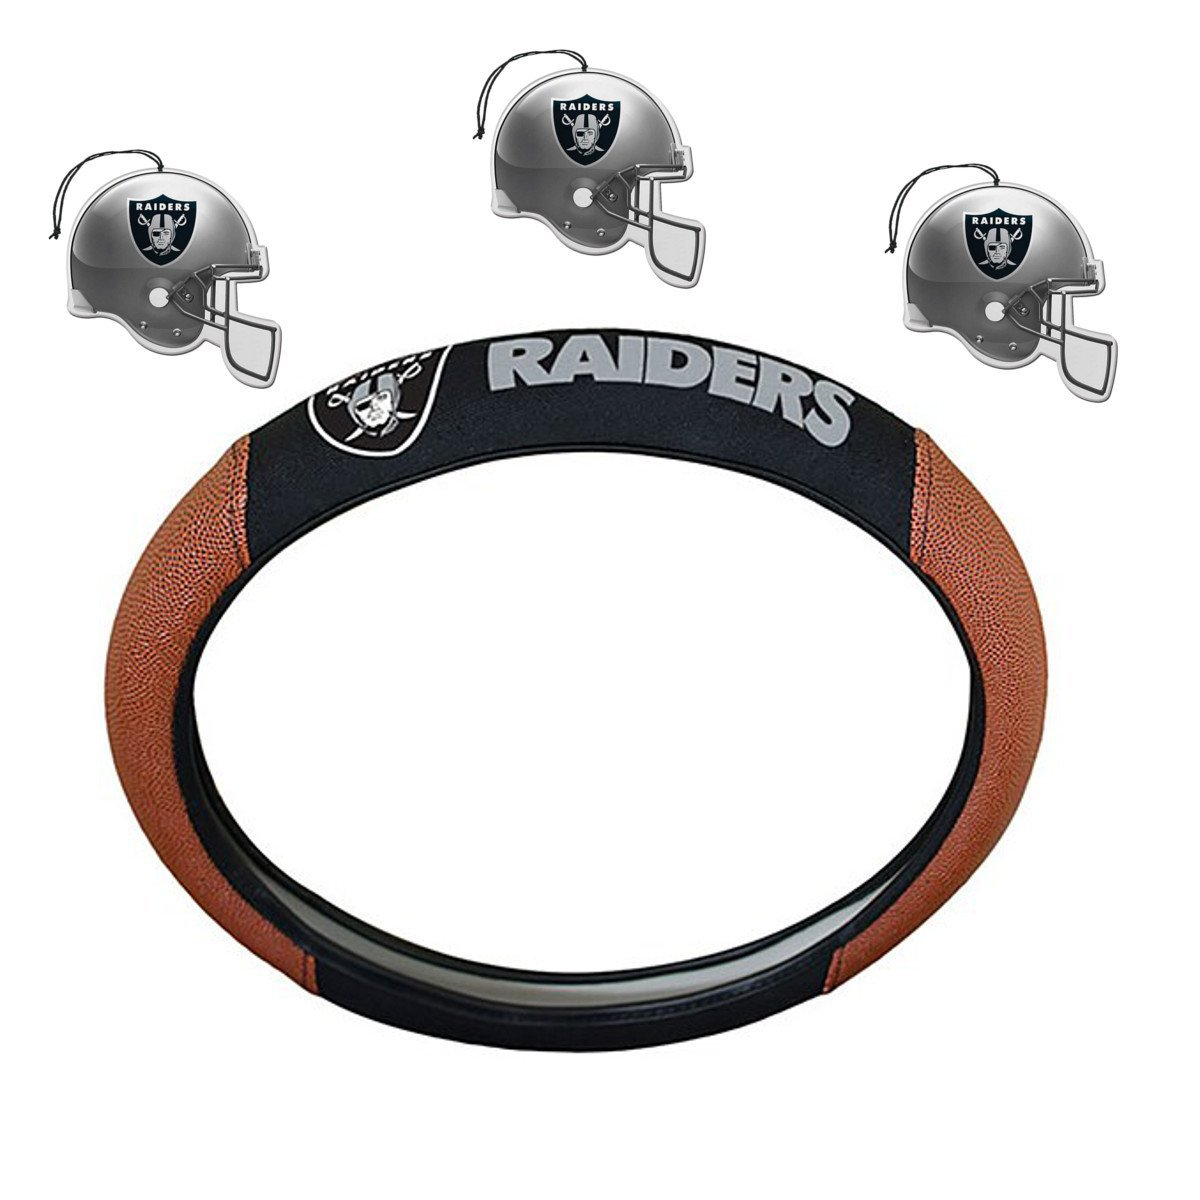 NFL Fan Shop Auto Bundle. Premium Pigskin Leather Accented Steering Wheel Cover with Embroidered Team Name and Logo along with a 3-Pack of Team Helmet Air Fresheners (Oakland Raiders)